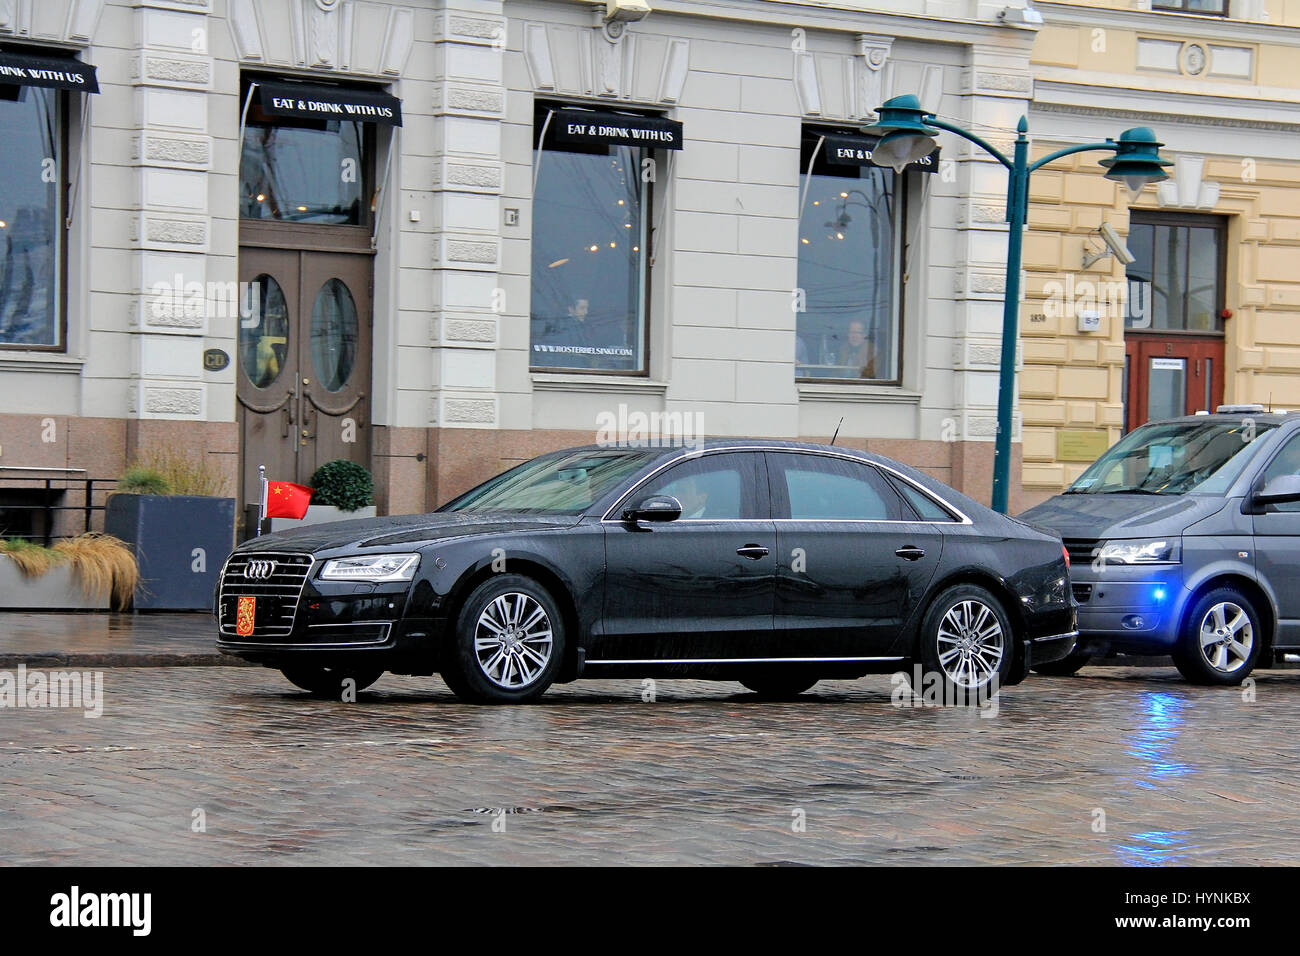 Audi a8 l 6 0 w12 quattro 2004 picture 3 of 5 rear angle image - Helsinki Finland April 5 2017 The President Of China Xi Jinping And